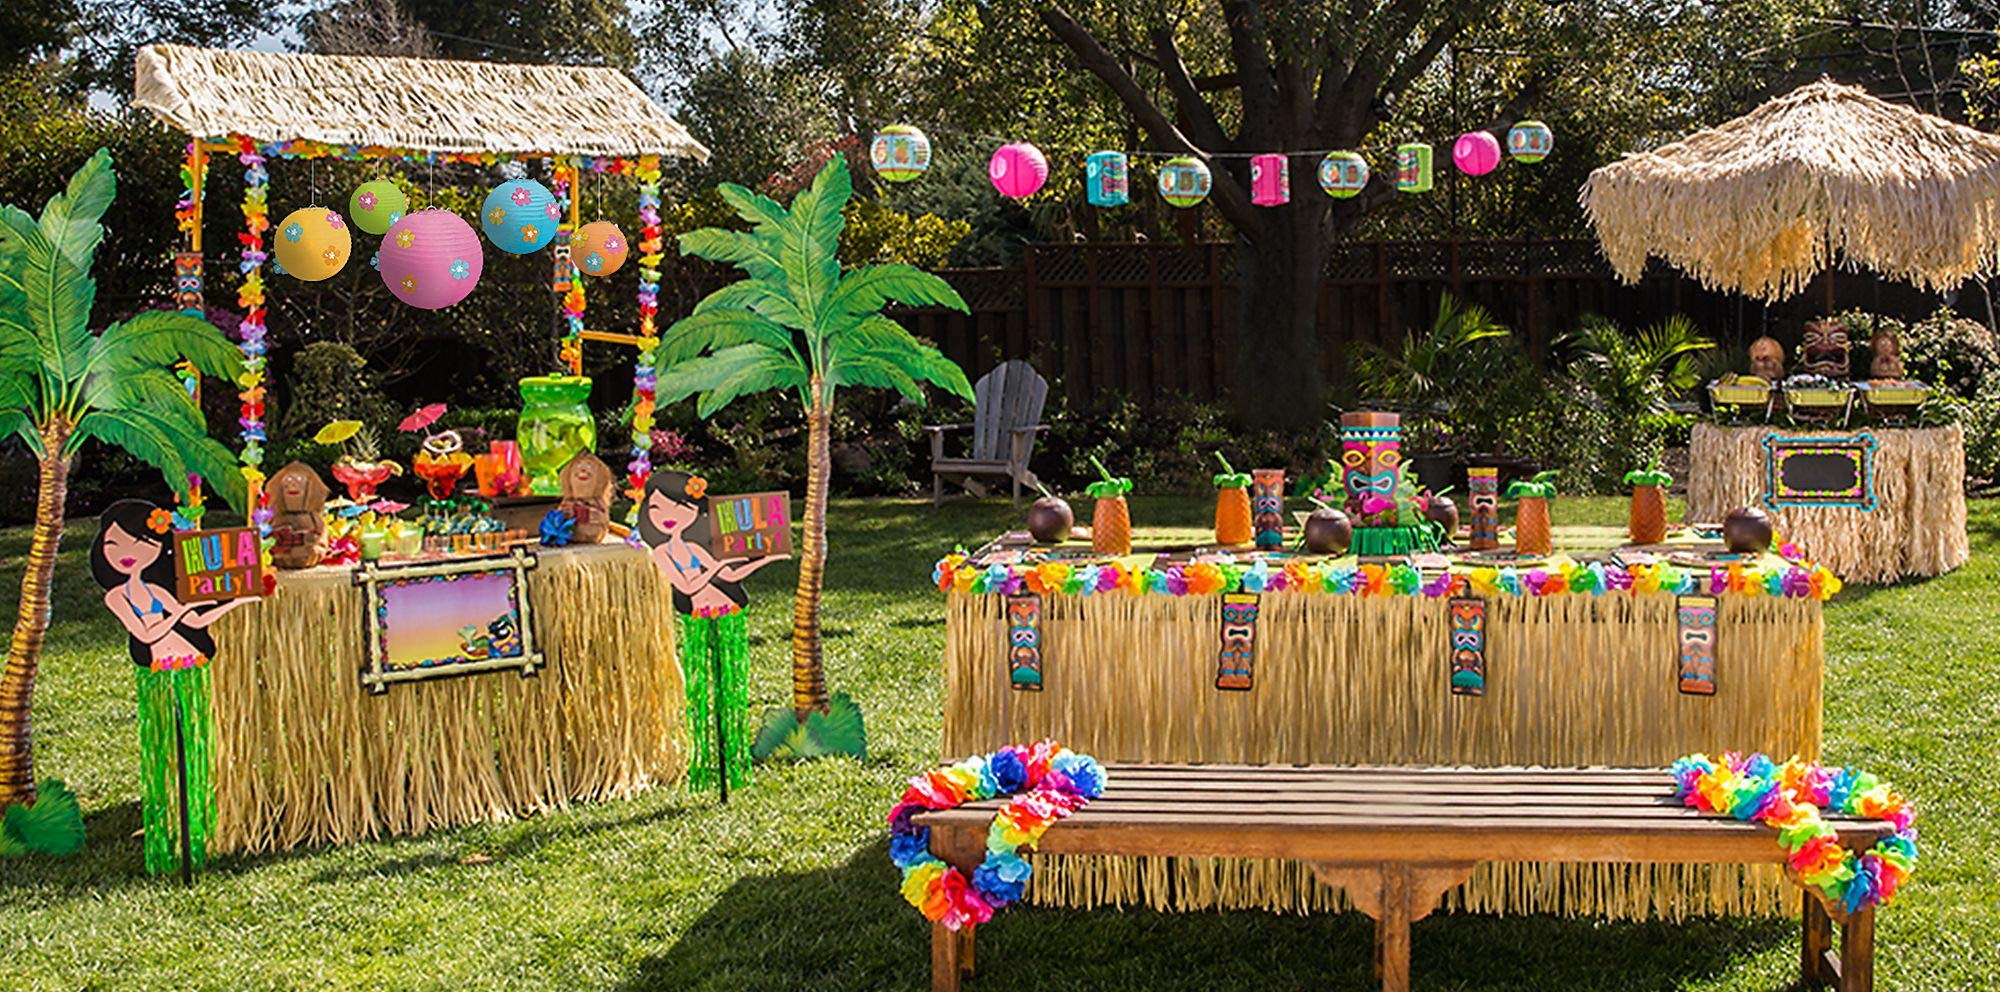 Party City Full Tiki Party Decorating Kit, Includes Tiki Bar, Signs, Decorations, Table Skirt, Centerpiece Kit and More